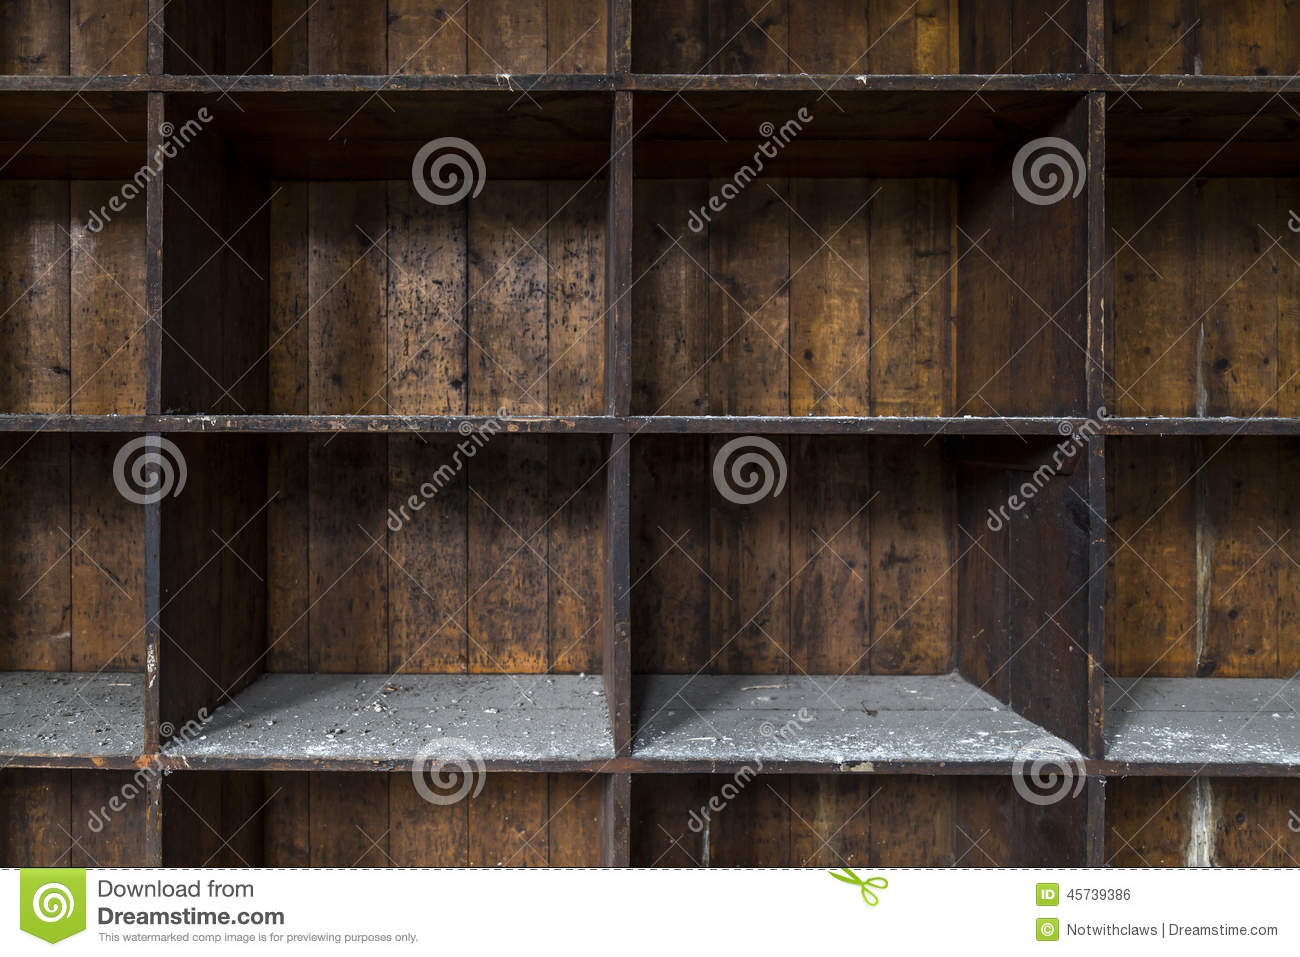 Old, distressed, empty wooden storage shelves